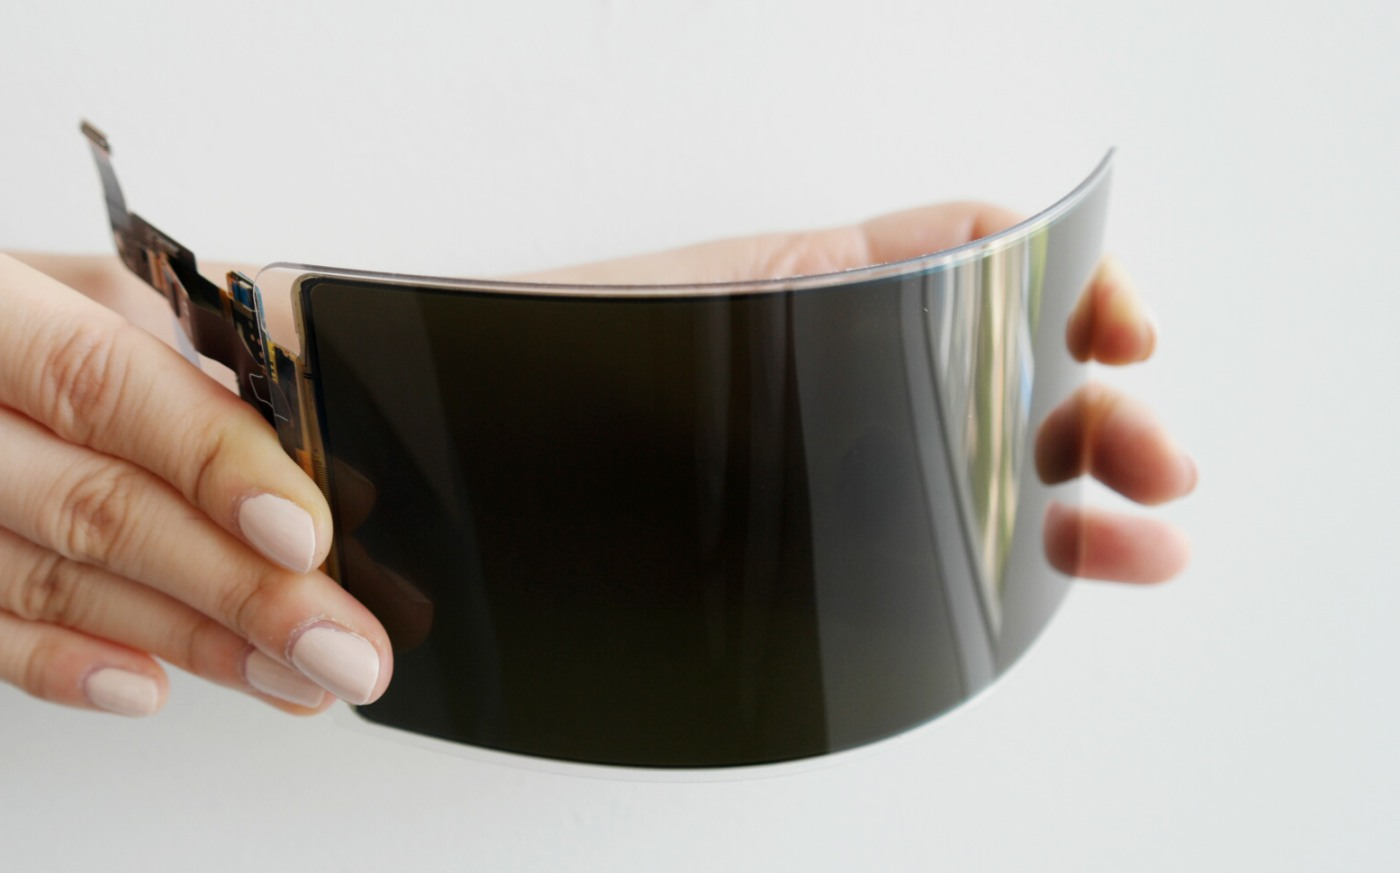 Samsung announces 'unbreakable' OLED displays for phones